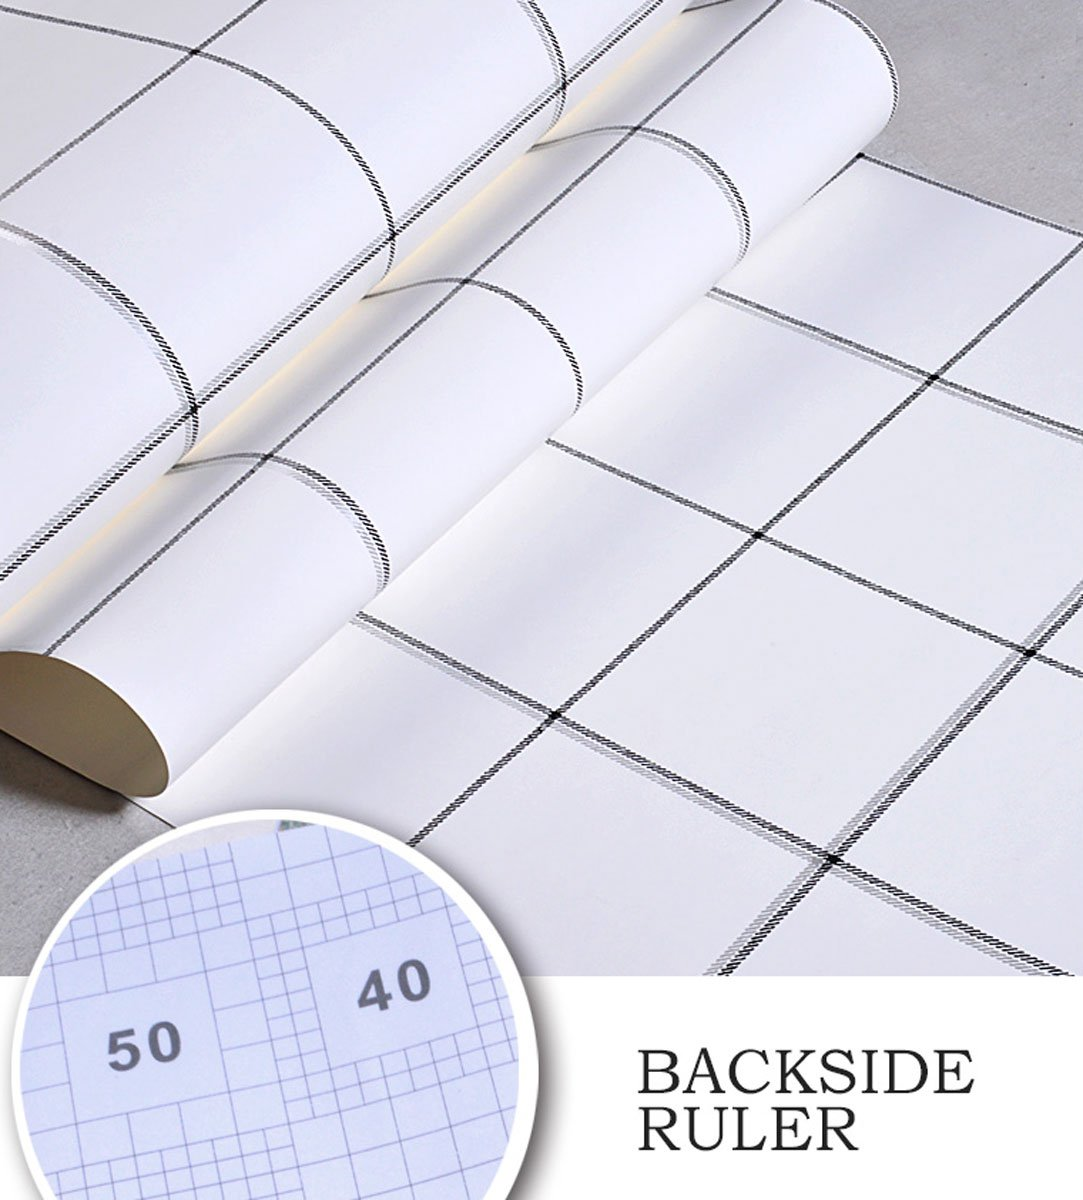 17.71'' X 118 '' White Grid Wallpaper Peel and Stick Wallpaper Dormitory Self-Adhesive Removable Wall Contact Paper Decor Decals Contracted Decoration Textured Panel for Smooth-Wall Surface